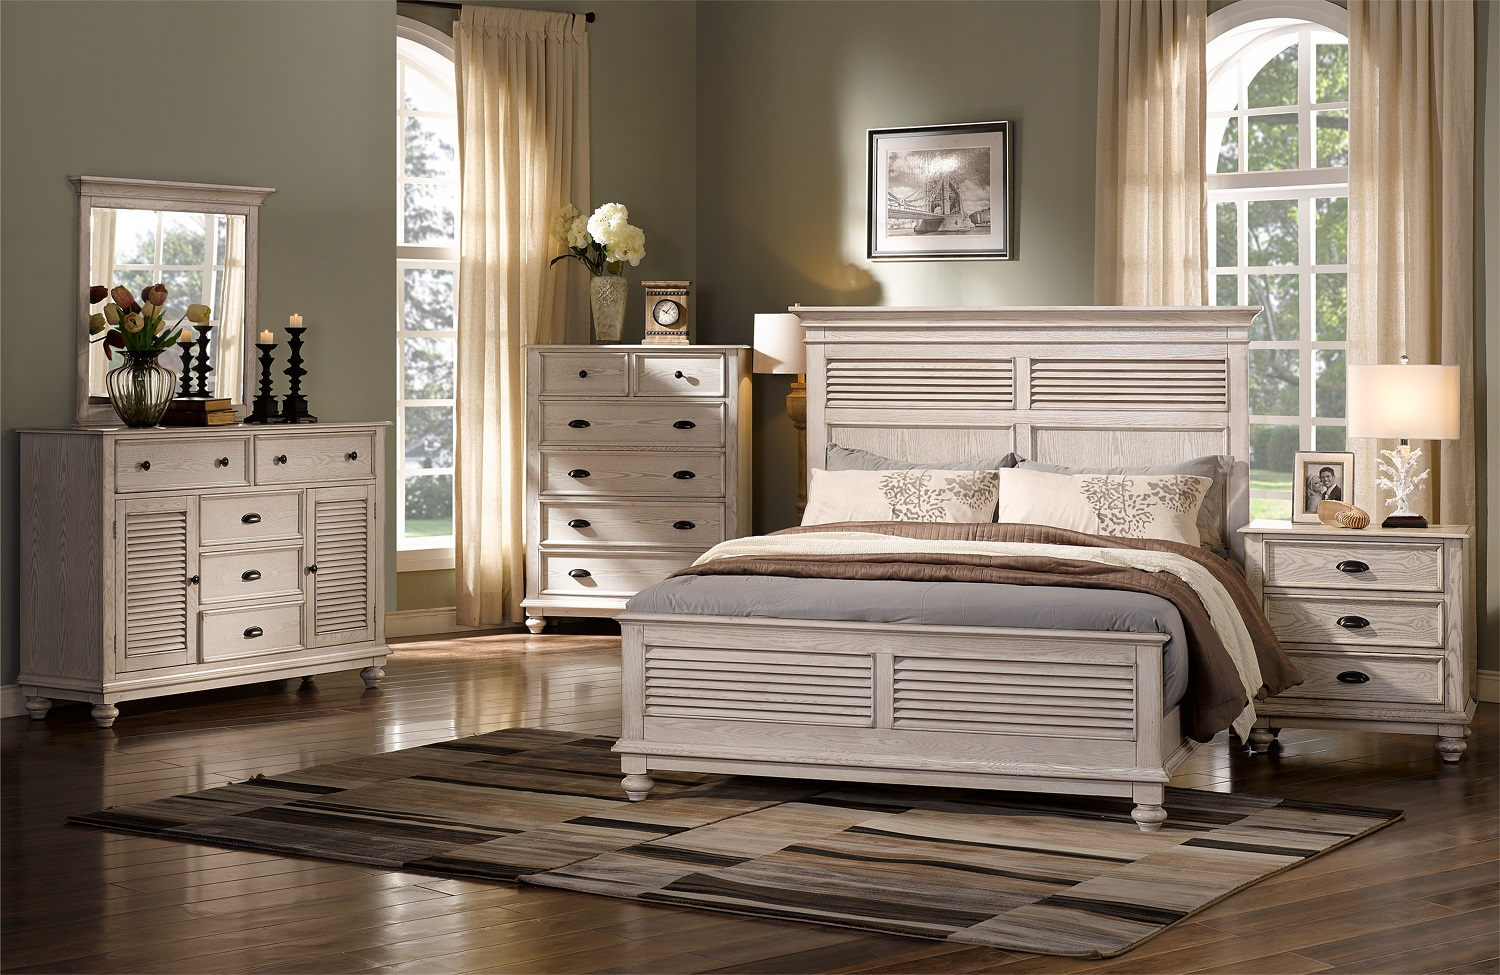 Lakeport bedroom Collection backordered / only king bed available